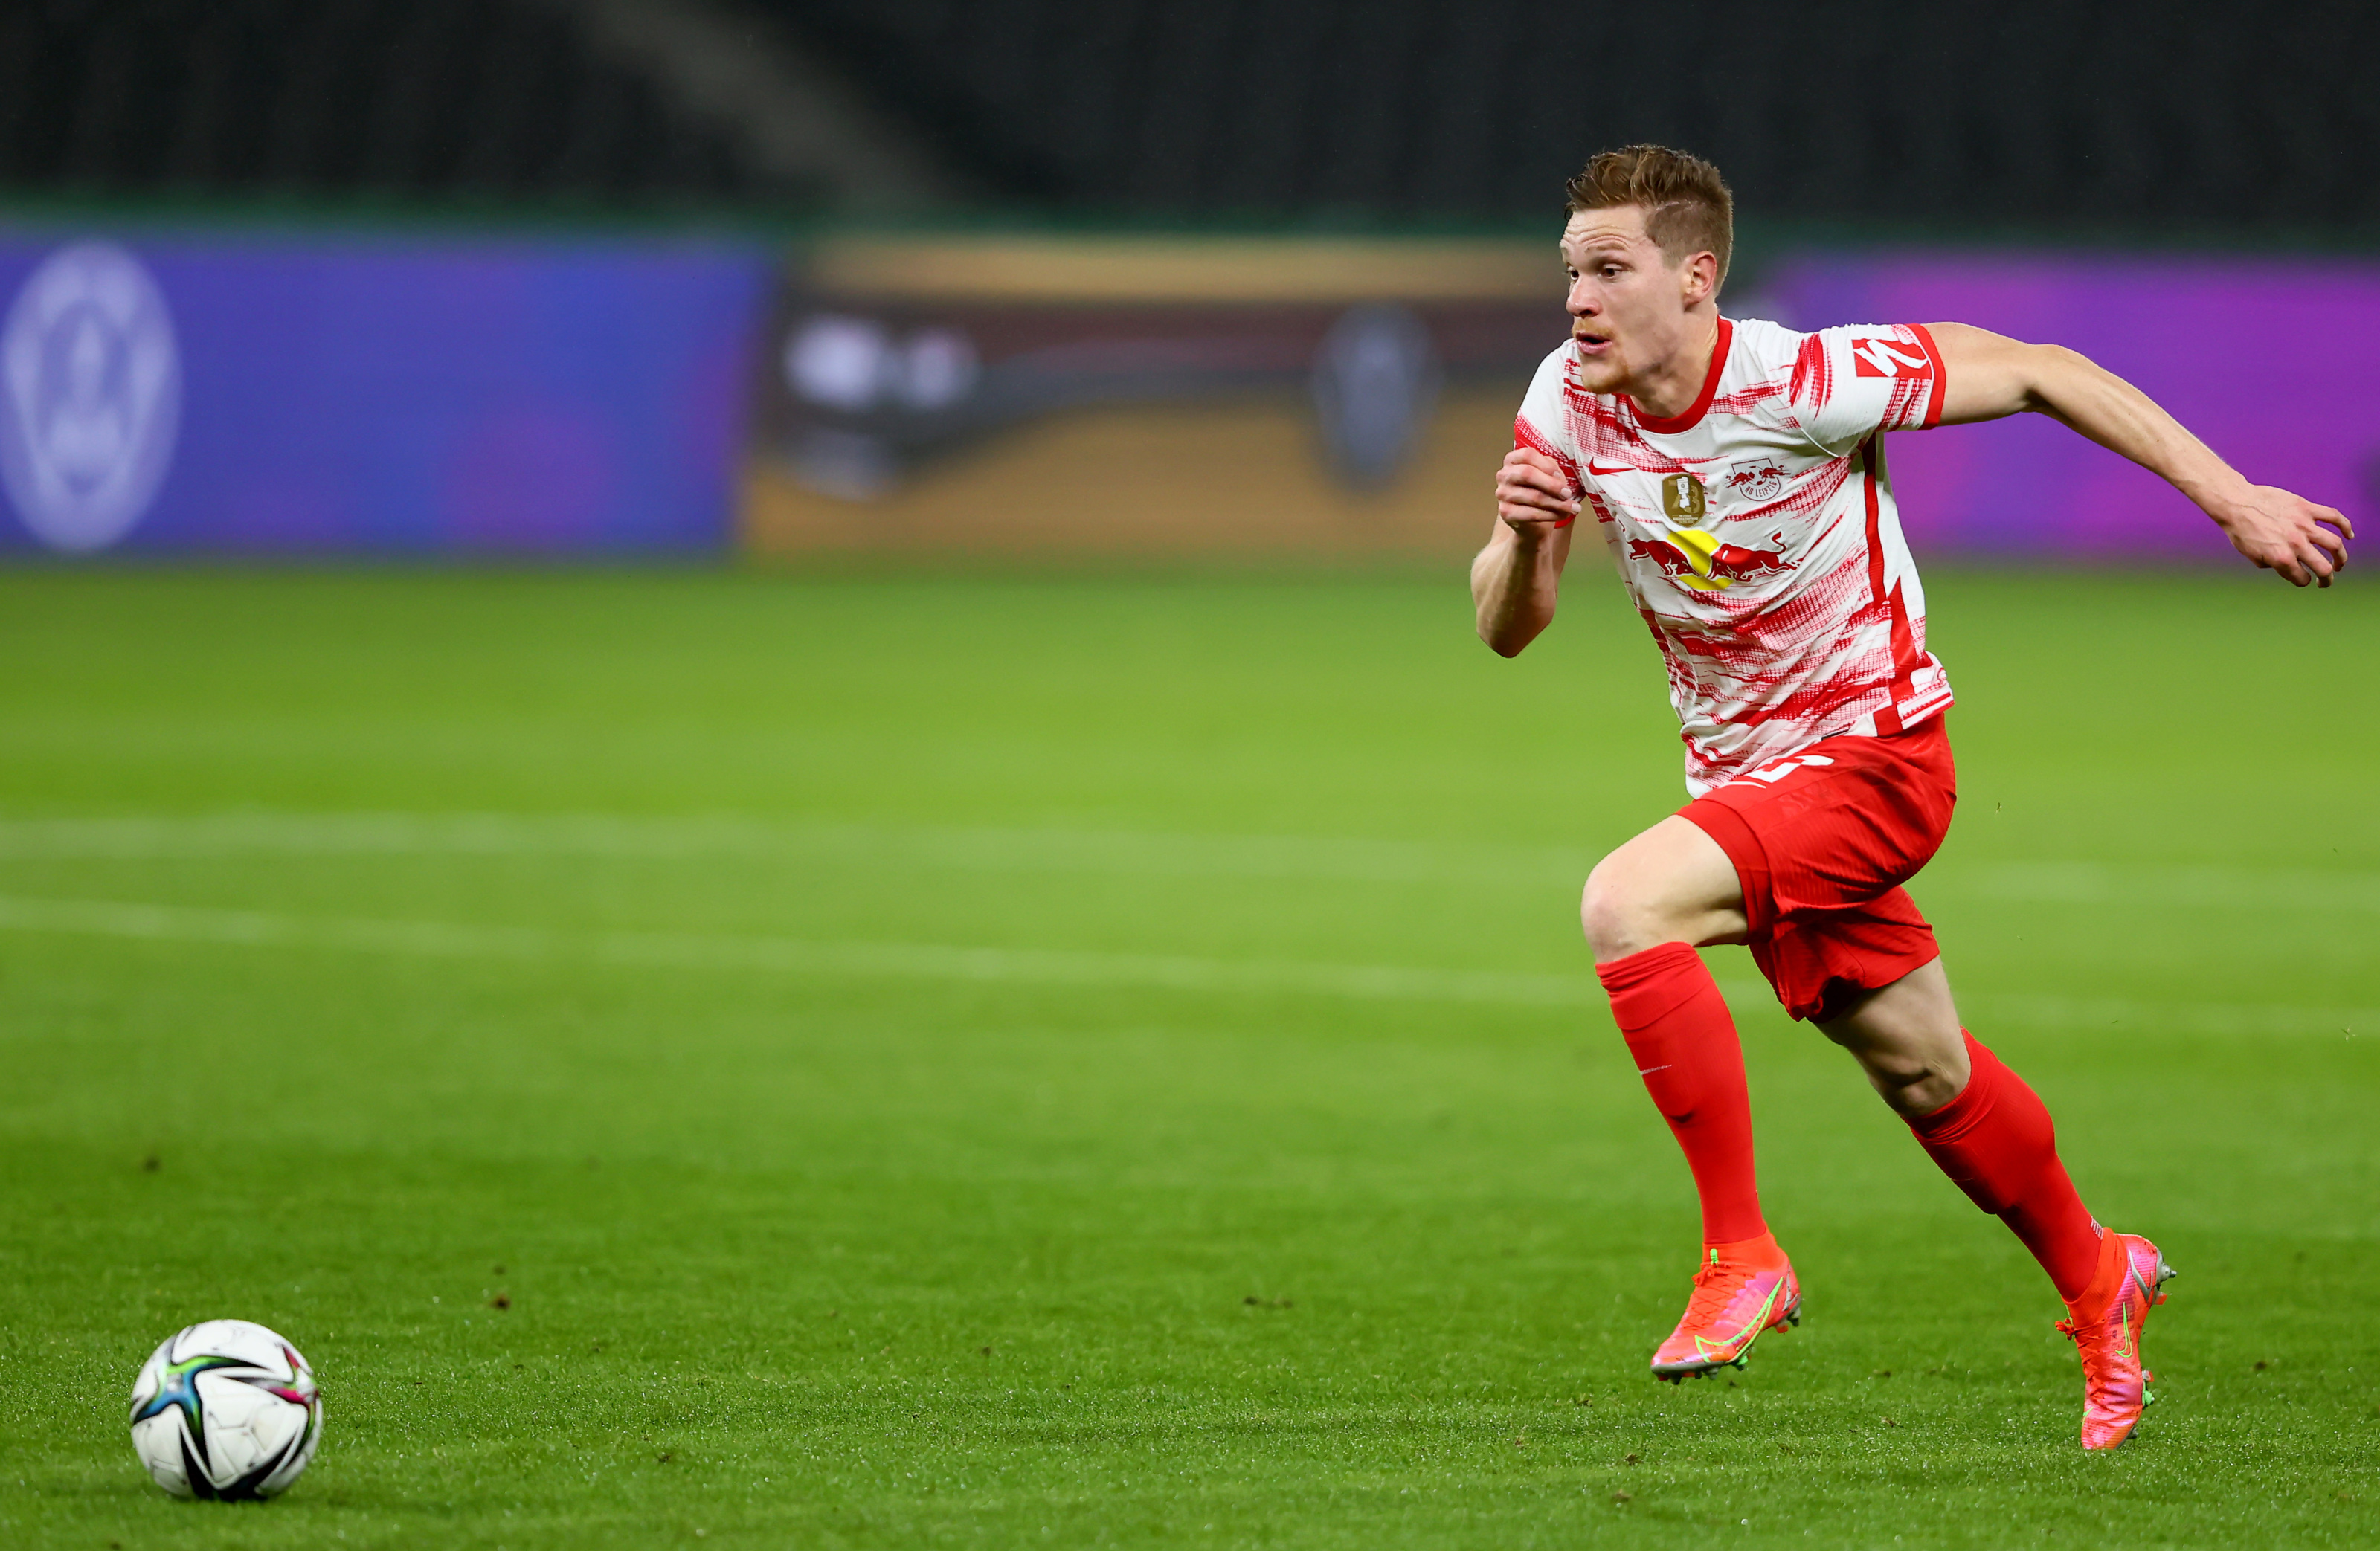 BERLIN, GERMANY - MAY 13: Marcel Halstenberg of RB Leipzig runs with the ball during the DFB Cup final match between RB Leipzig and Borussia Dortmund at Olympic Stadium on May 13, 2021 in Berlin, Germany. Sporting stadiums around Germany remain under strict restrictions due to the Coronavirus Pandemic as Government social distancing laws prohibit fans inside venues resulting in games being played behind closed doors. (Photo by Martin Rose/Getty Images)